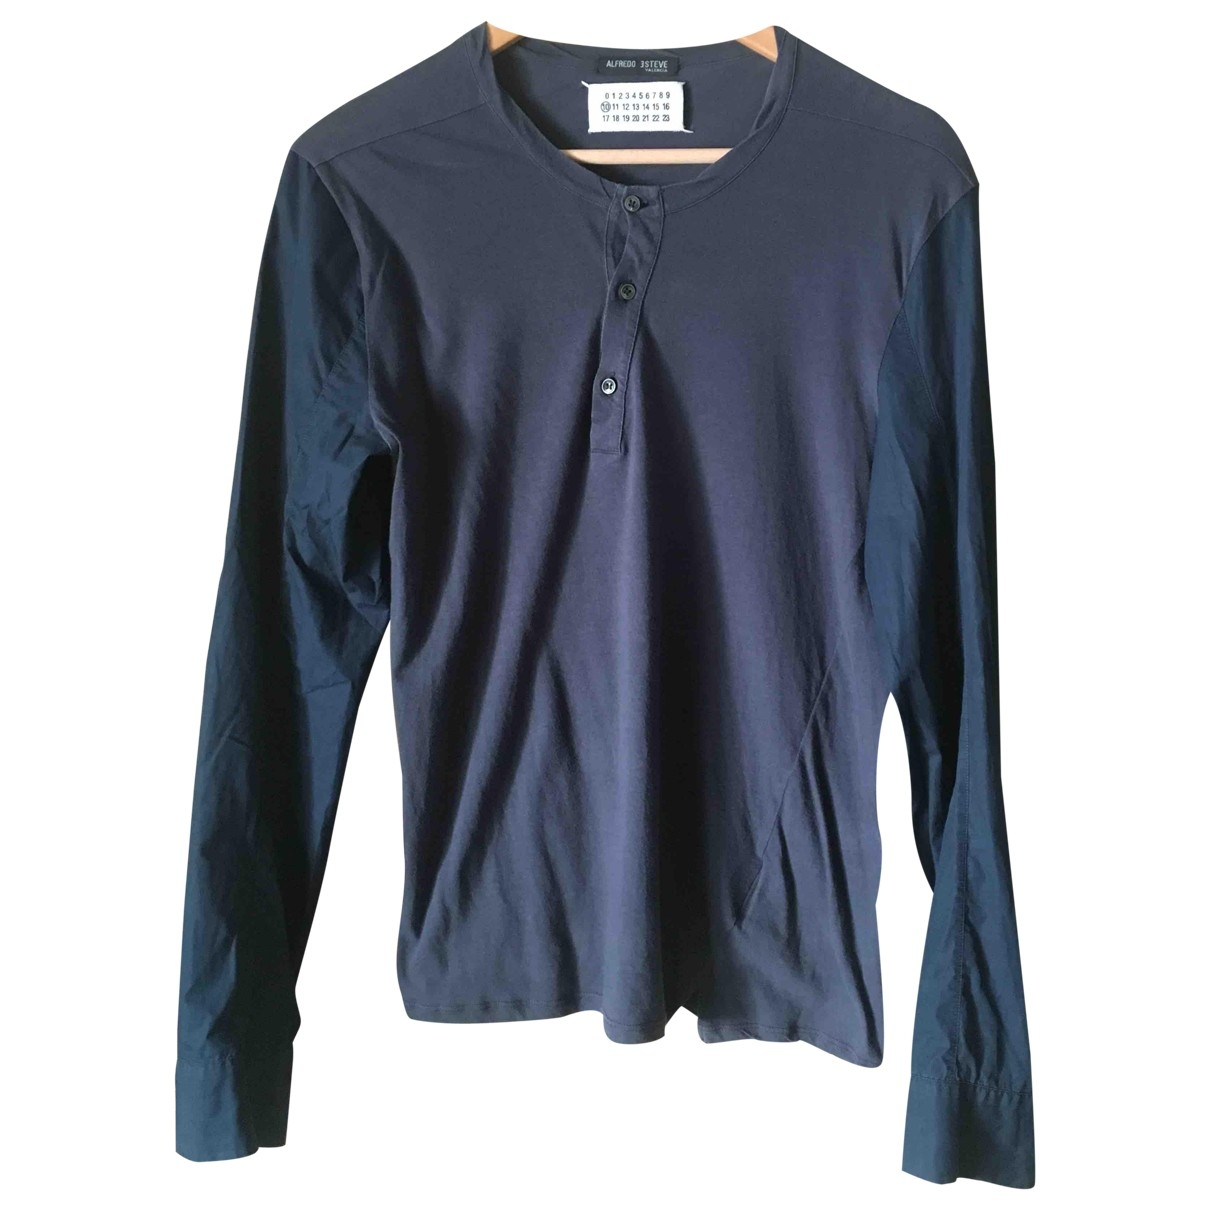 Maison Martin Margiela \N Navy Cotton Shirts for Men S International